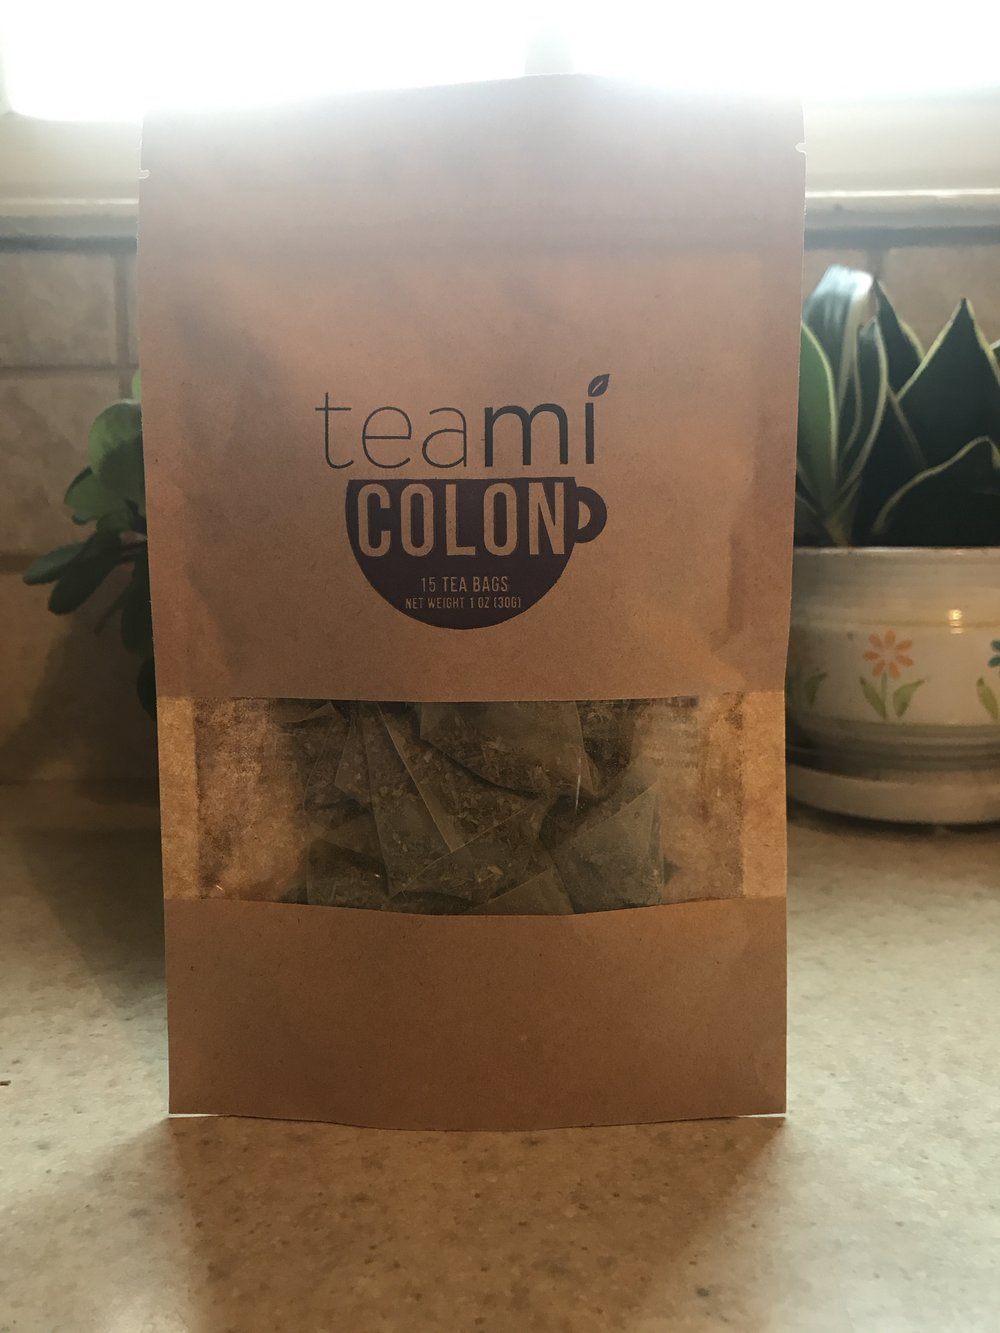 teami colon front.JPG